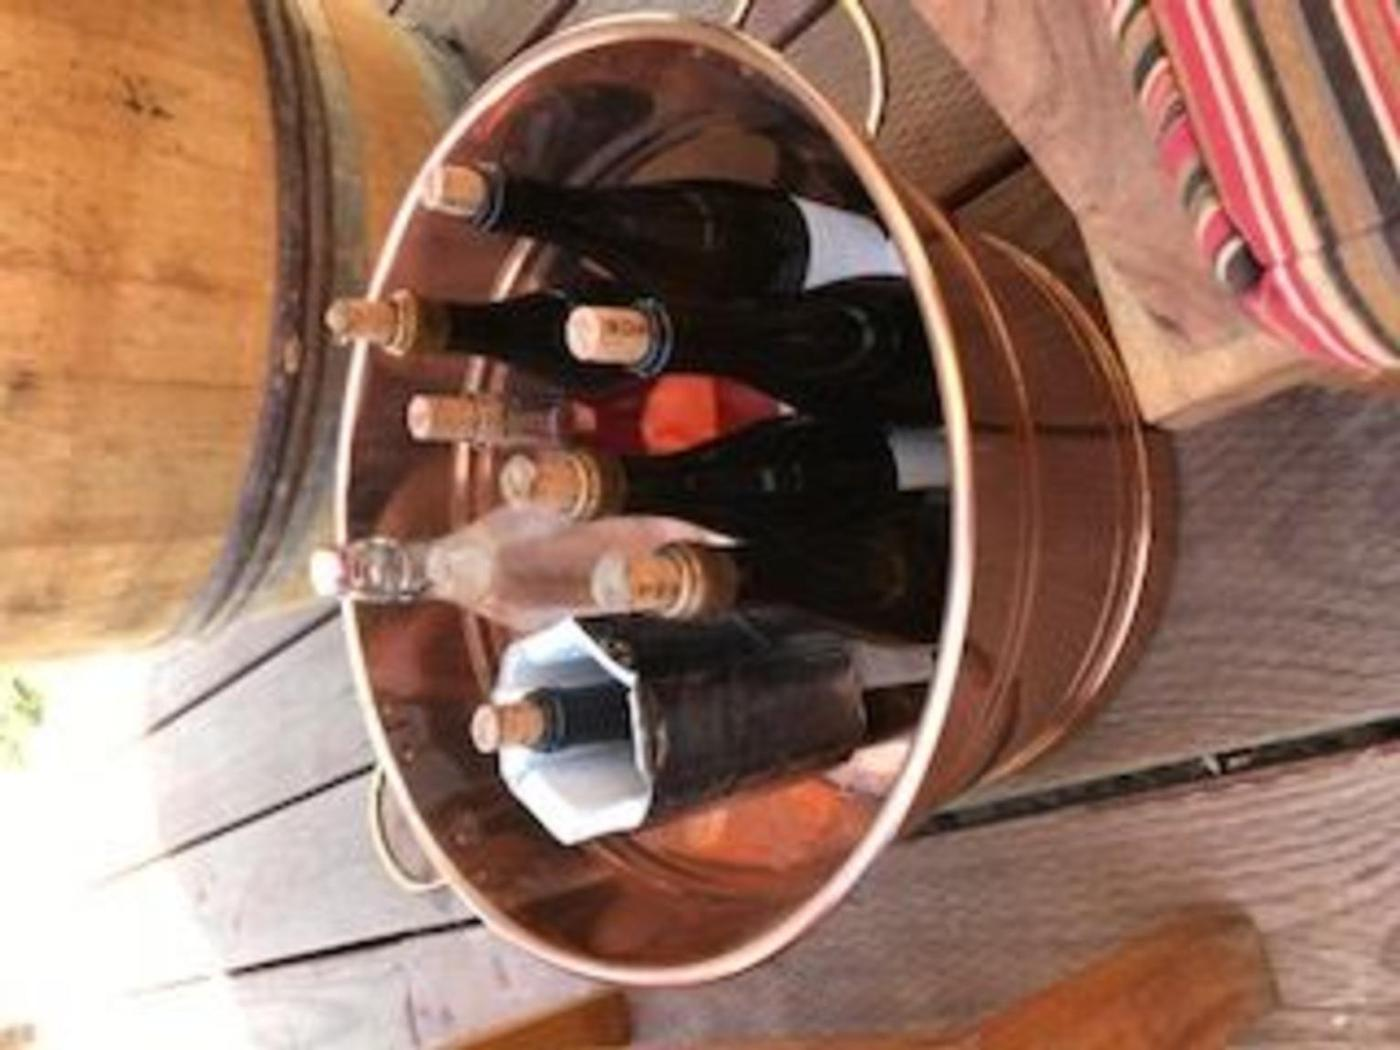 Wine tasting at Pence Vineyards